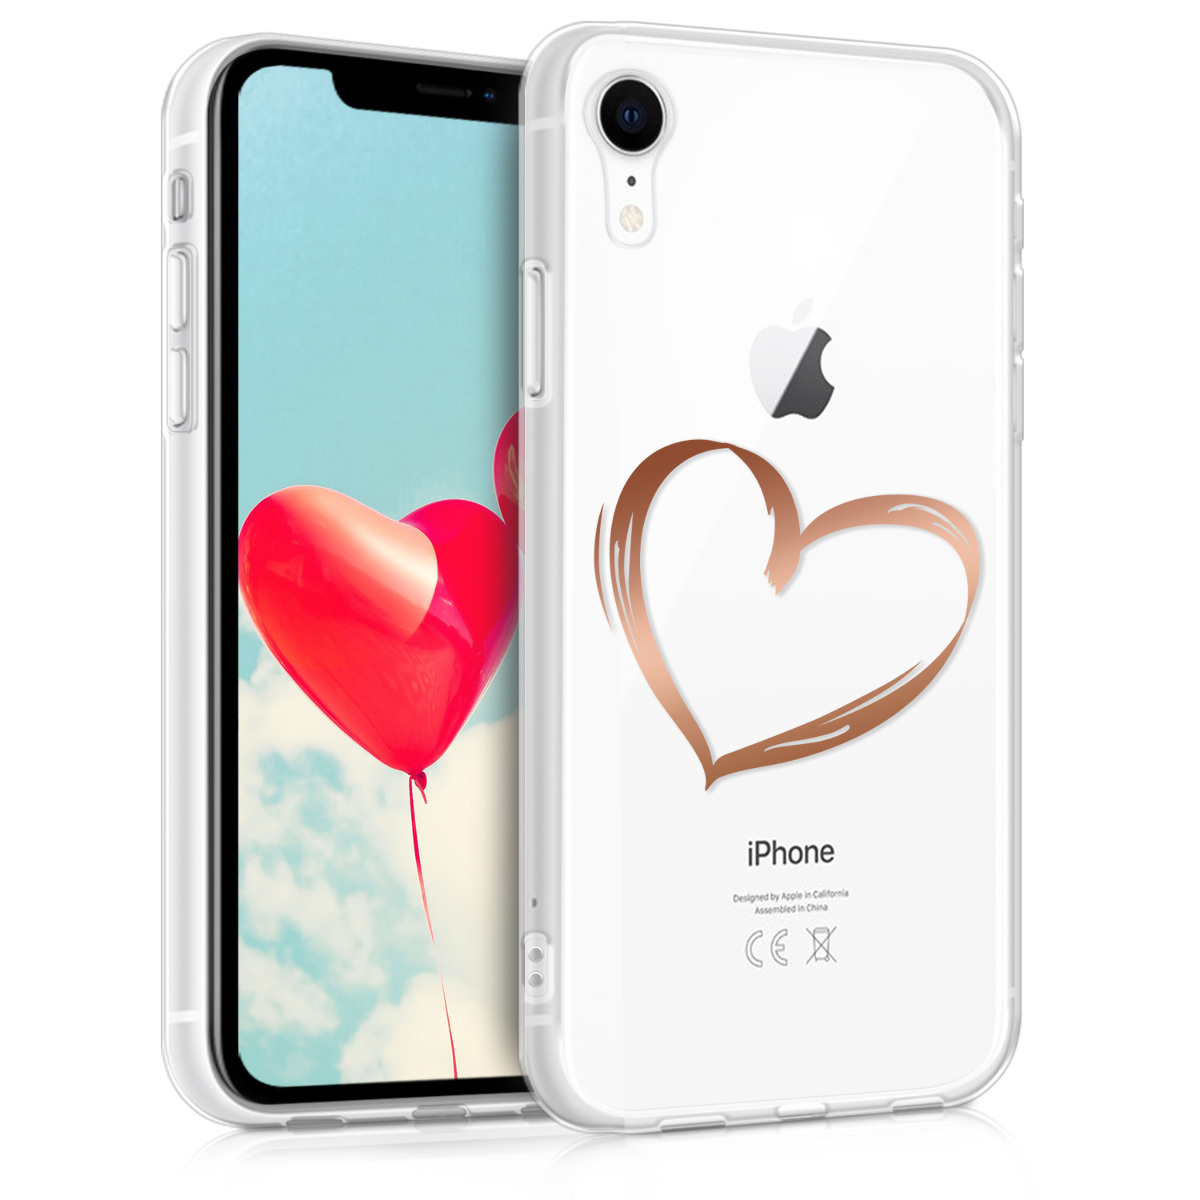 KW Θήκη Σιλικόνης iPhone XR - Rose Gold / Transparent (45912.08)